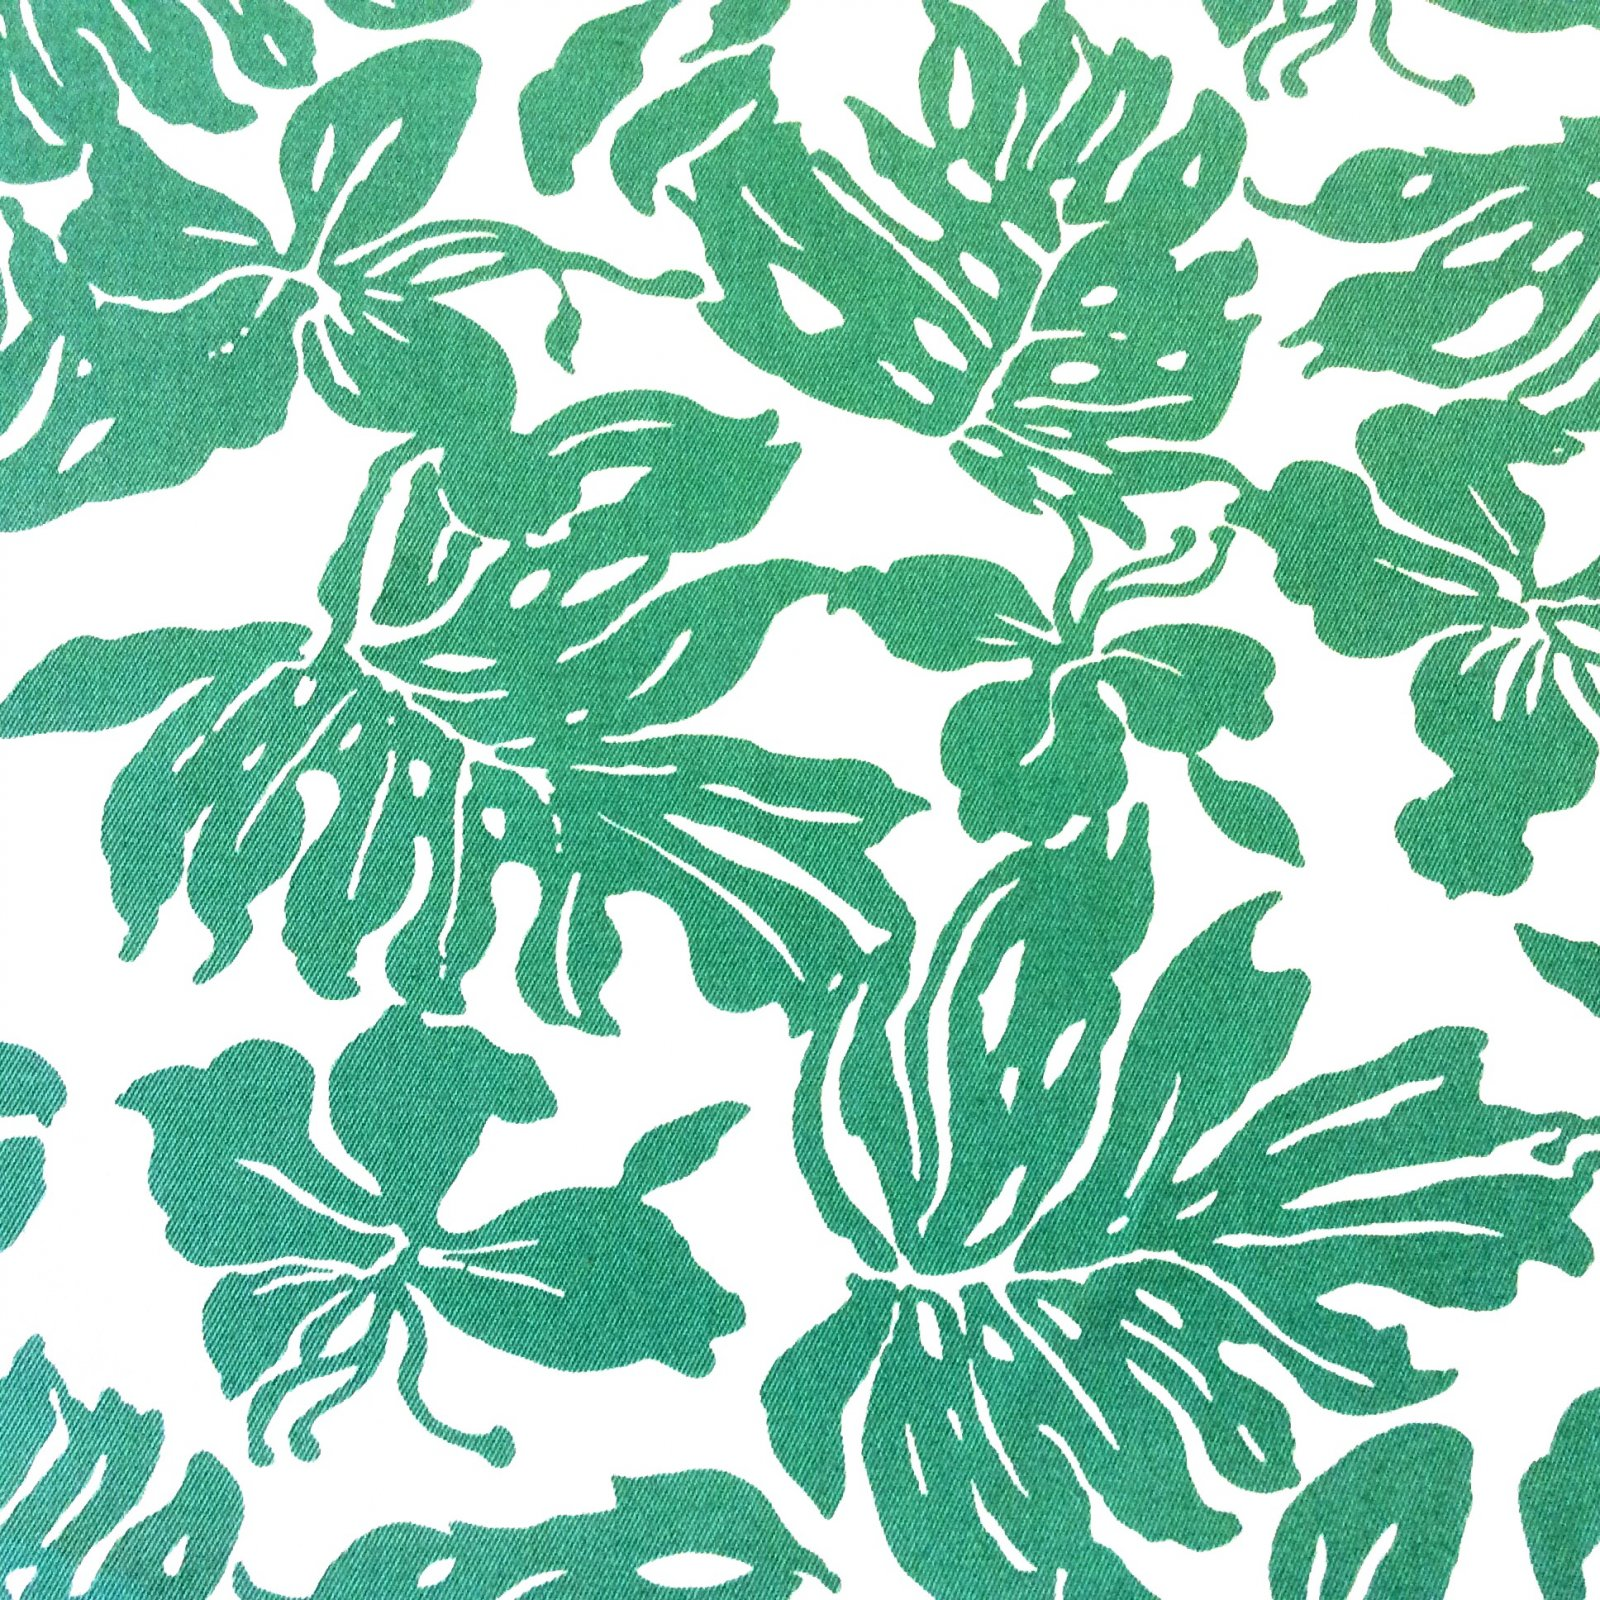 Floral Large Scale Famous Maker Acrylic Outdoor Fabric Green Graphic